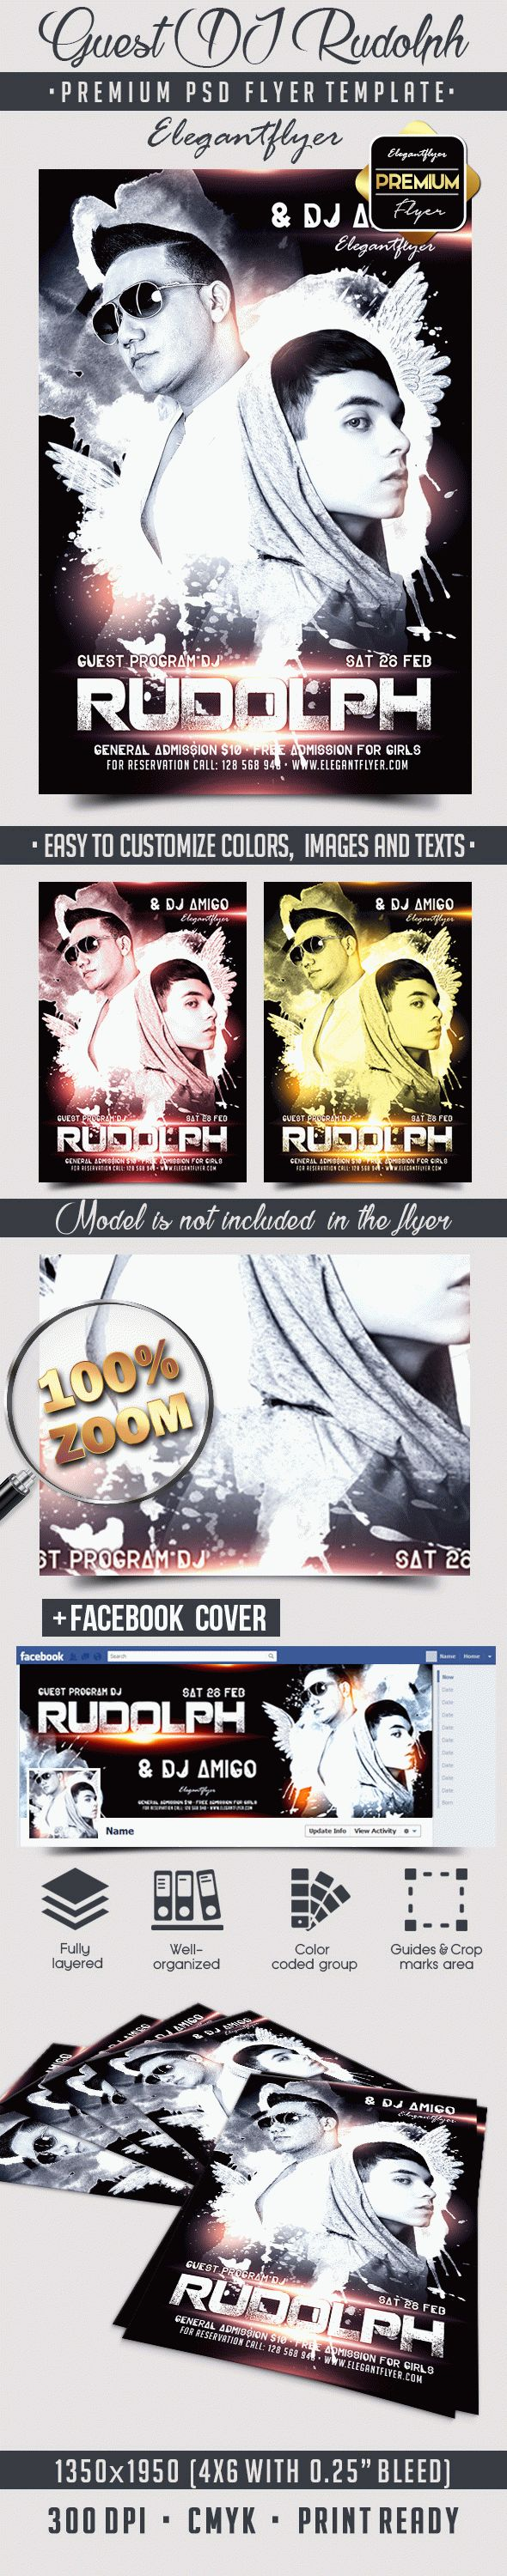 Guest DJ Rudolph – Flyer PSD Template + Facebook Cover